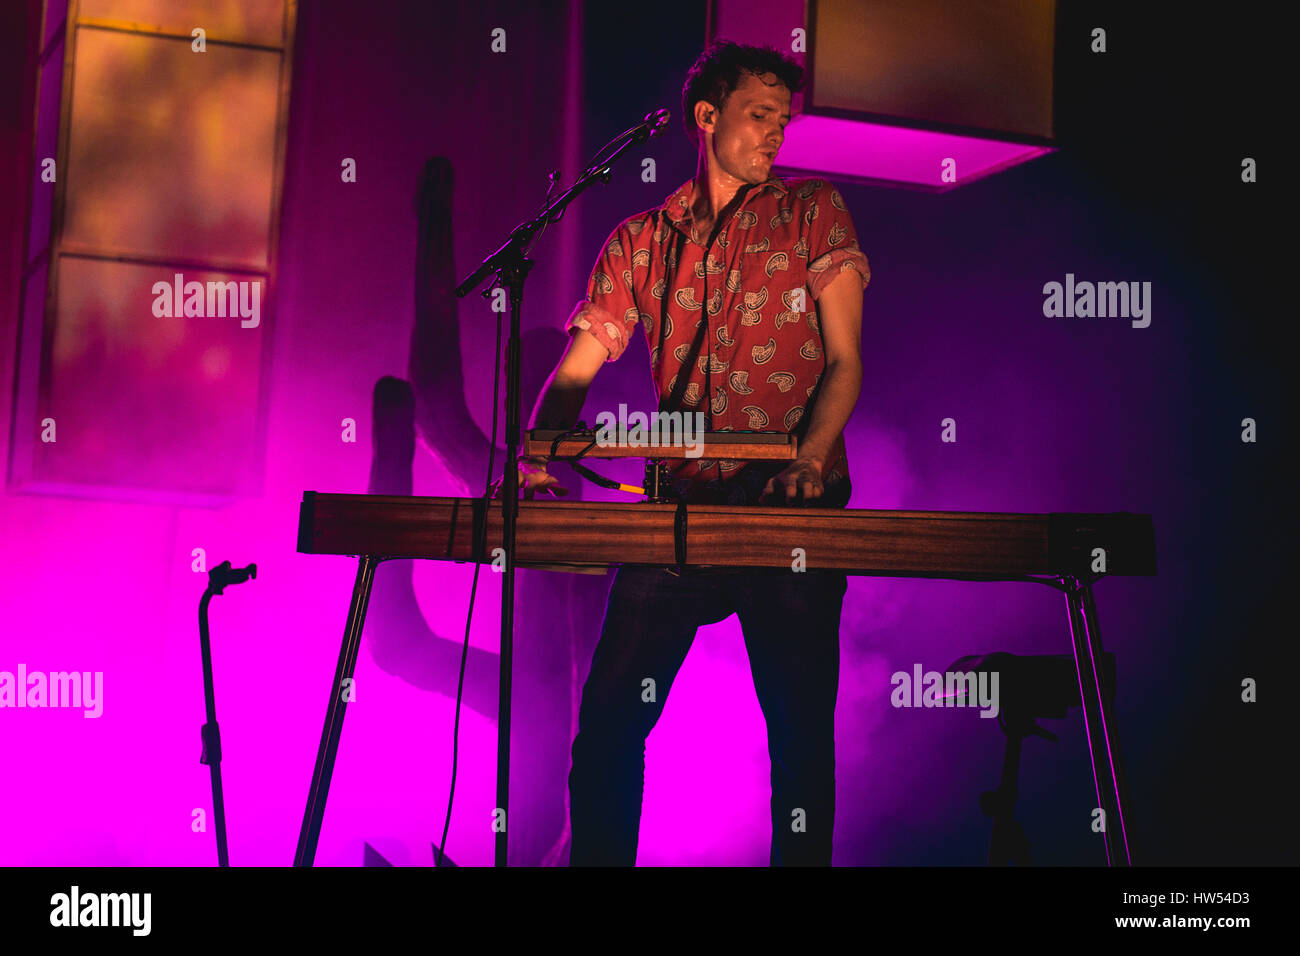 Glass Animals performing at London, Brixton 02 Academy - 16 March 2017 - Stock Image